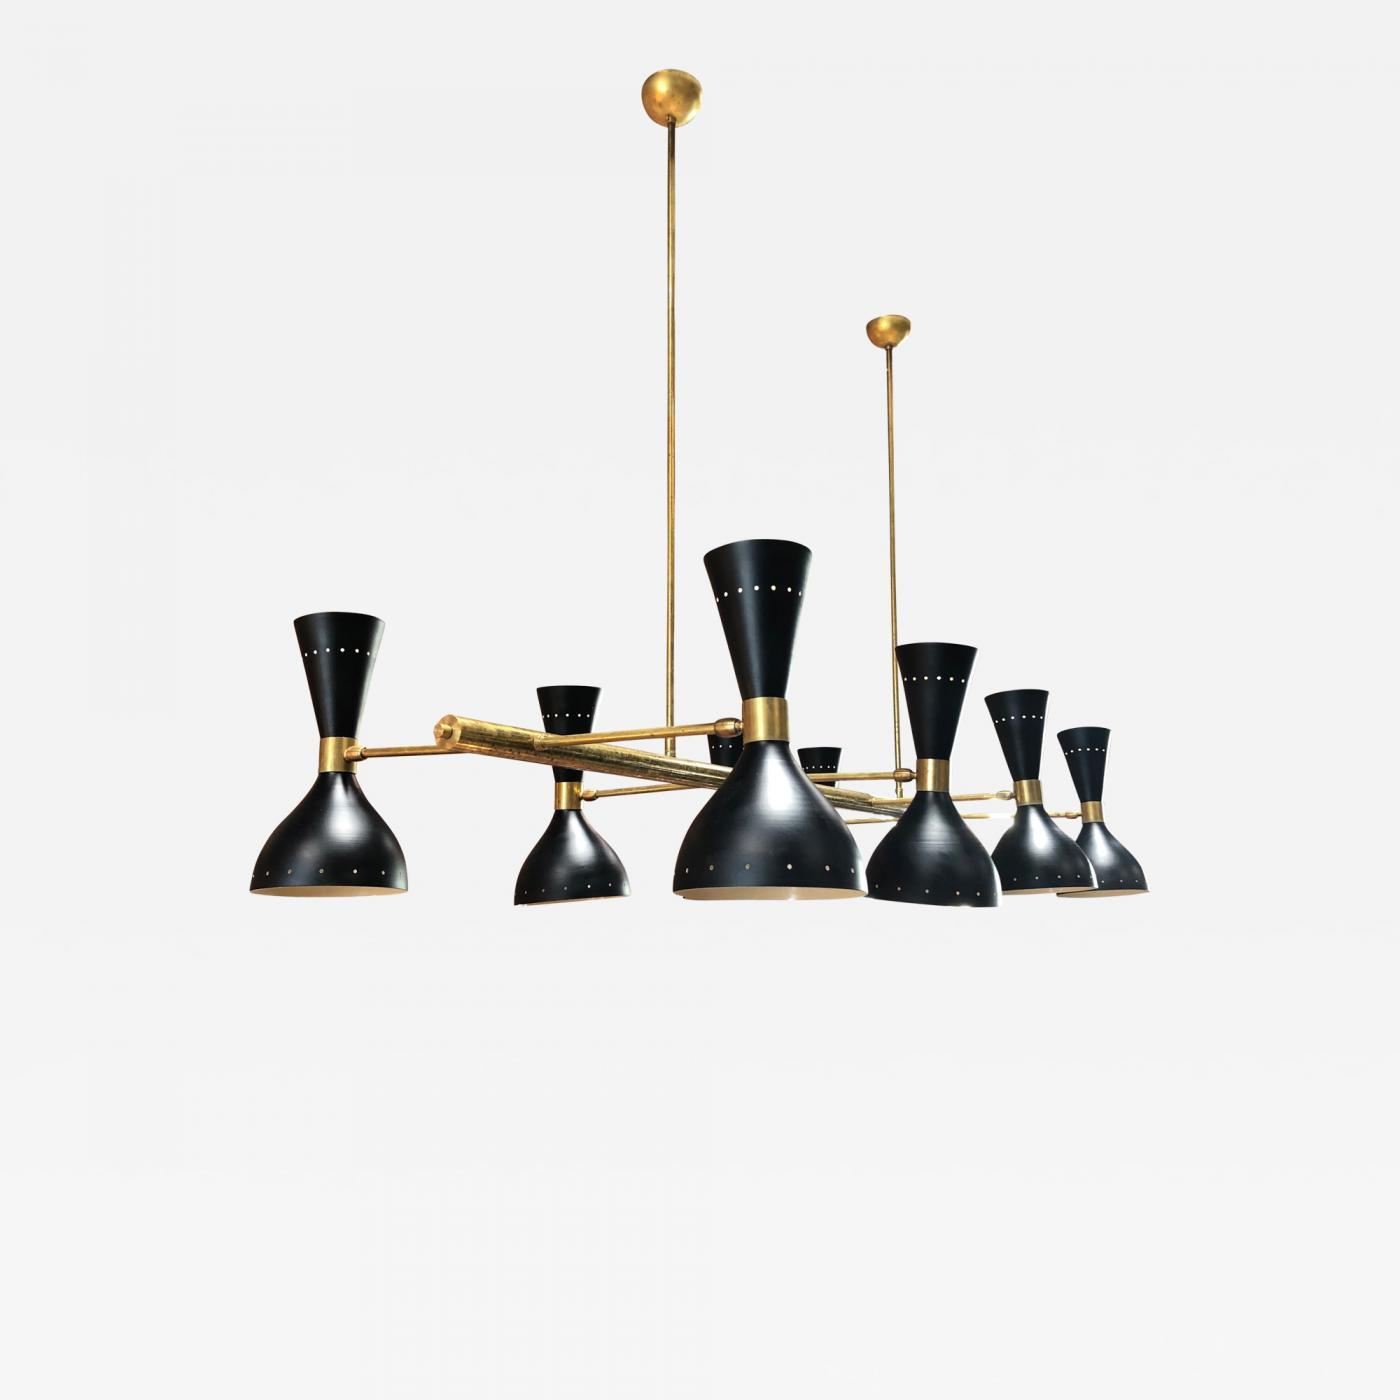 Mid Century Chandelier In Brass And Lacquered Metal With 8 Lights Italy 1960s